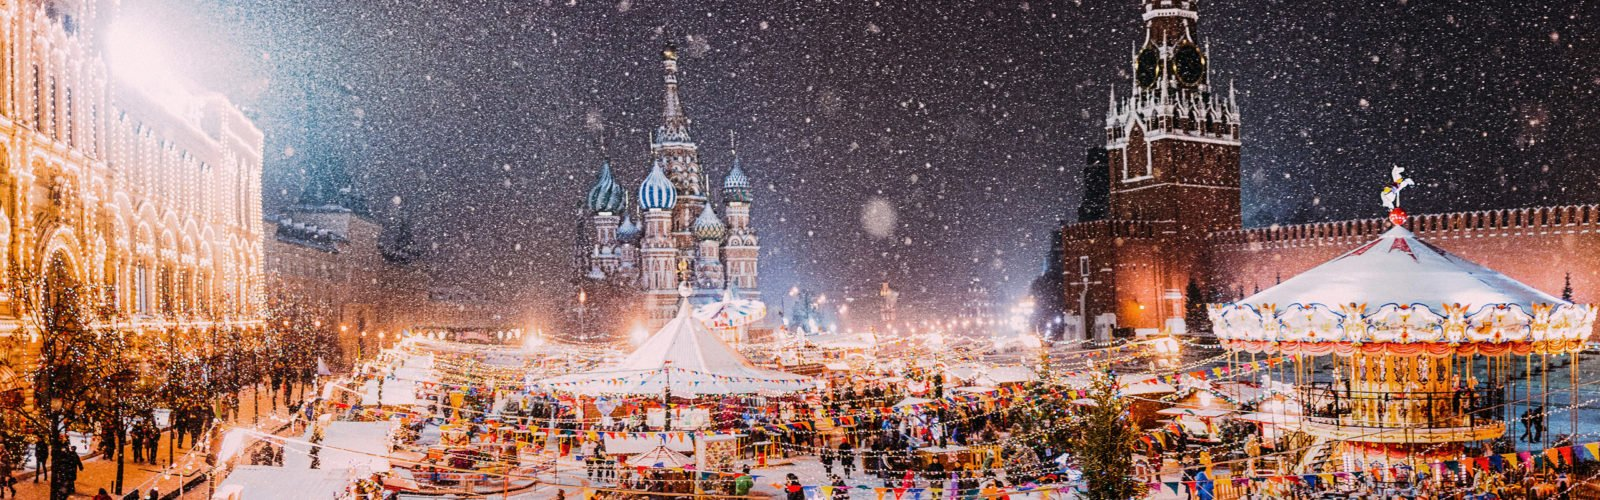 Christmas Market in Red Square, Moscow